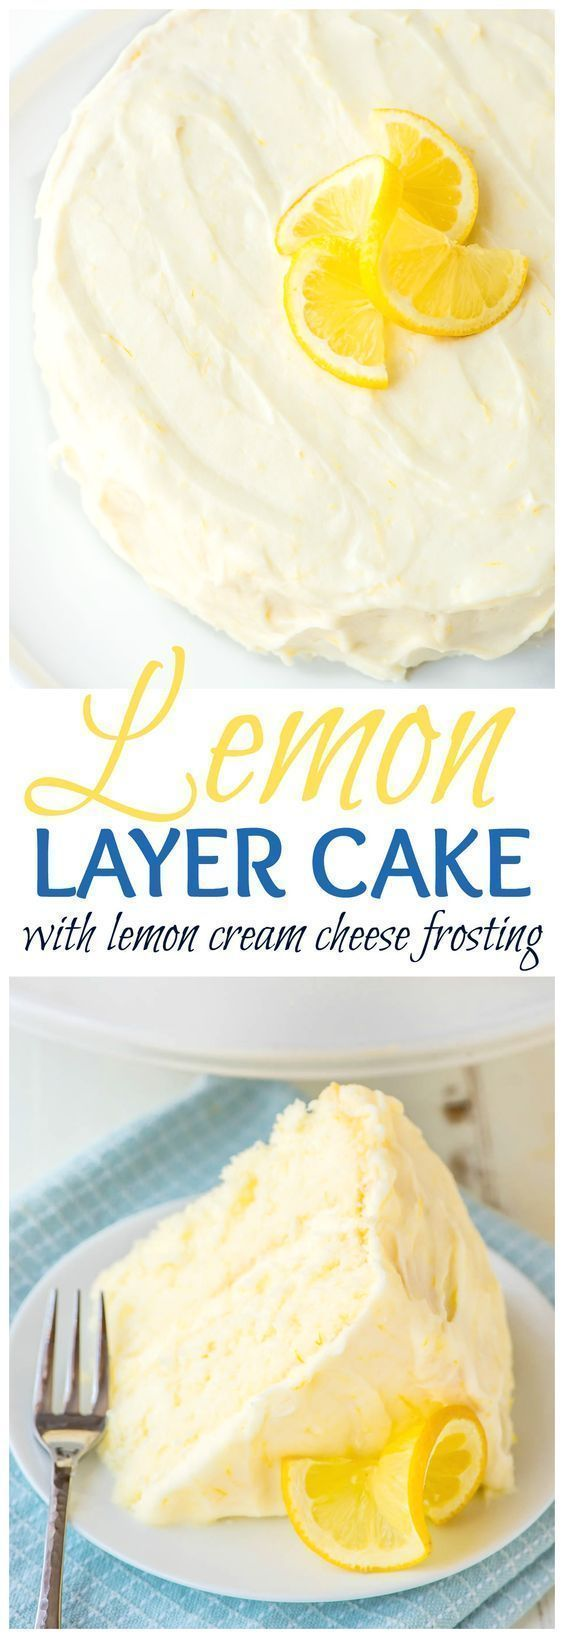 Lemon Cake with Lemon Cream Cheese Frosting - Supremely moist and fluffy lemon layer cake with homemade lemon cream cheese frosting. Every bite bursts with fresh lemon flavor! The perfect cake for any occasion.